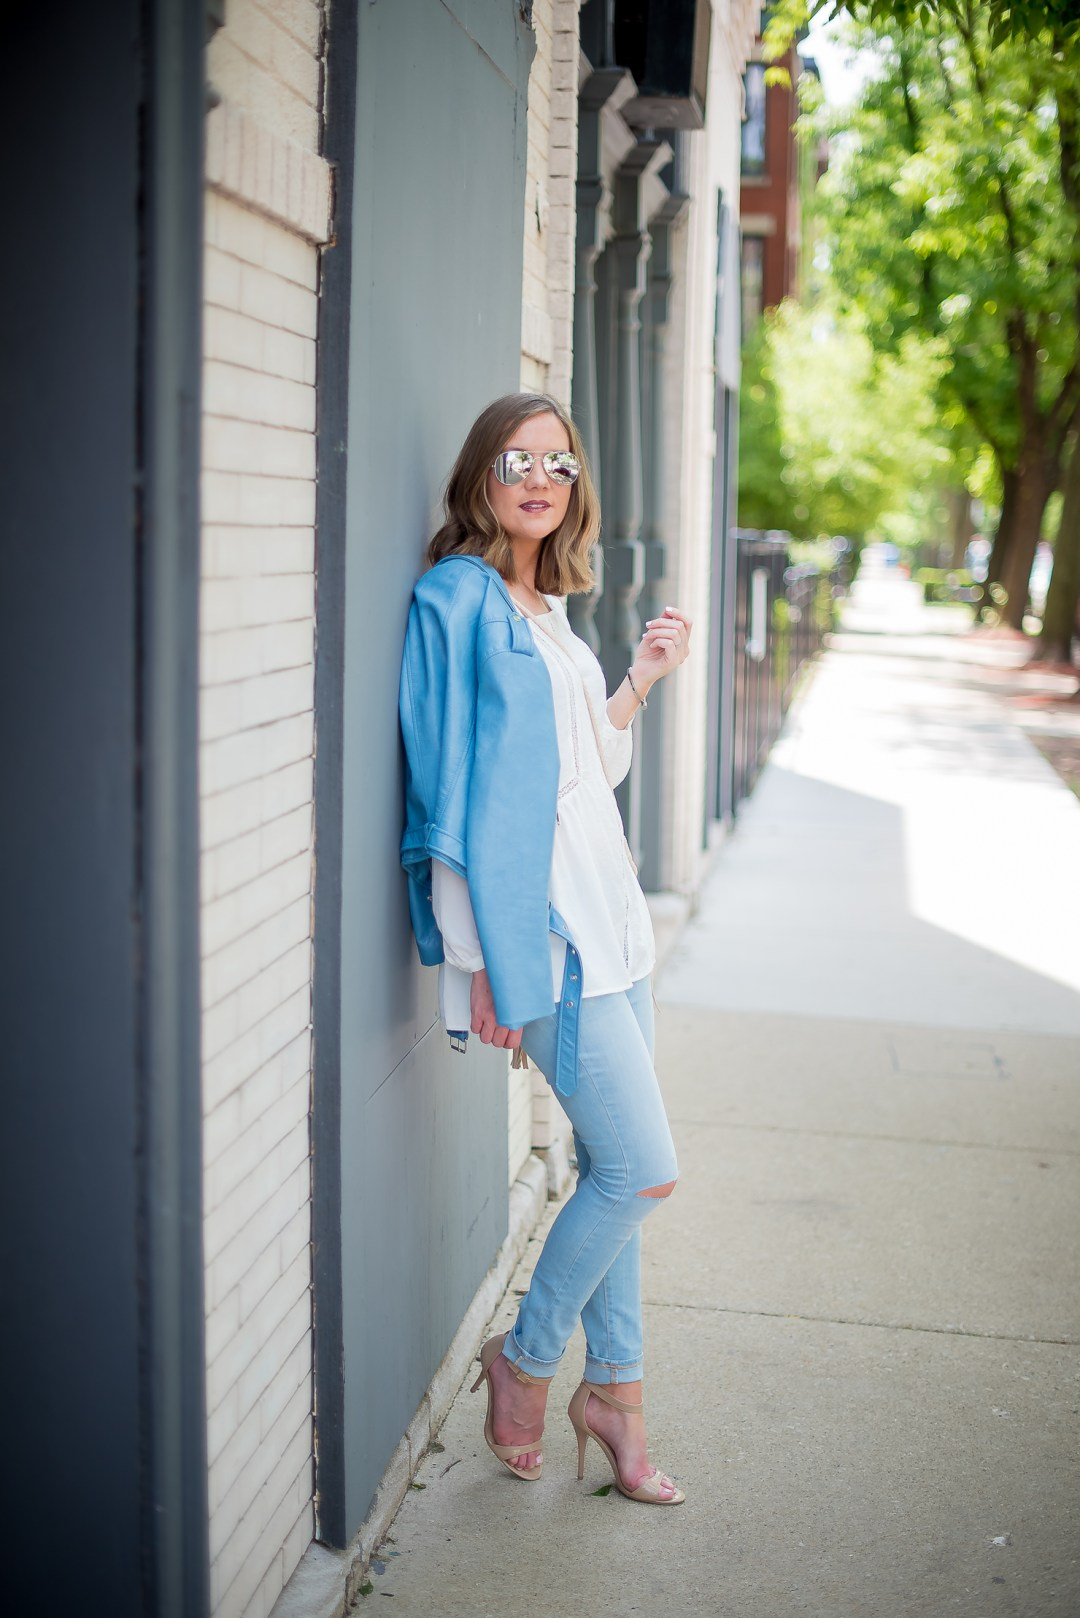 zara-blue-faux-leather-cropped-moto-jacket-white-flowy-blouse-light-blue-skinny-jeans-mossimo-tassel-canteen-bag-mirrored-aviators